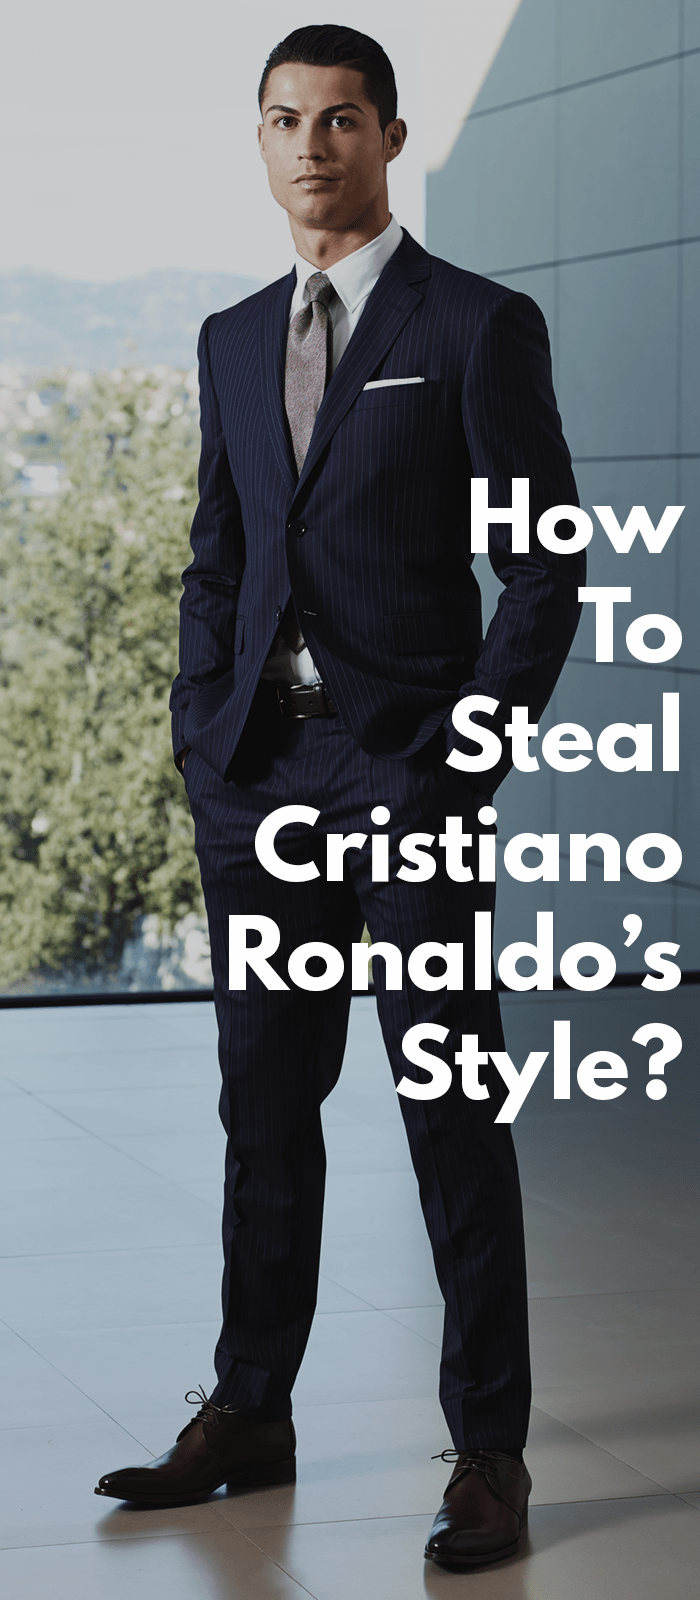 cbad43b46d7 How To Steal Cristiano Ronaldo s Style